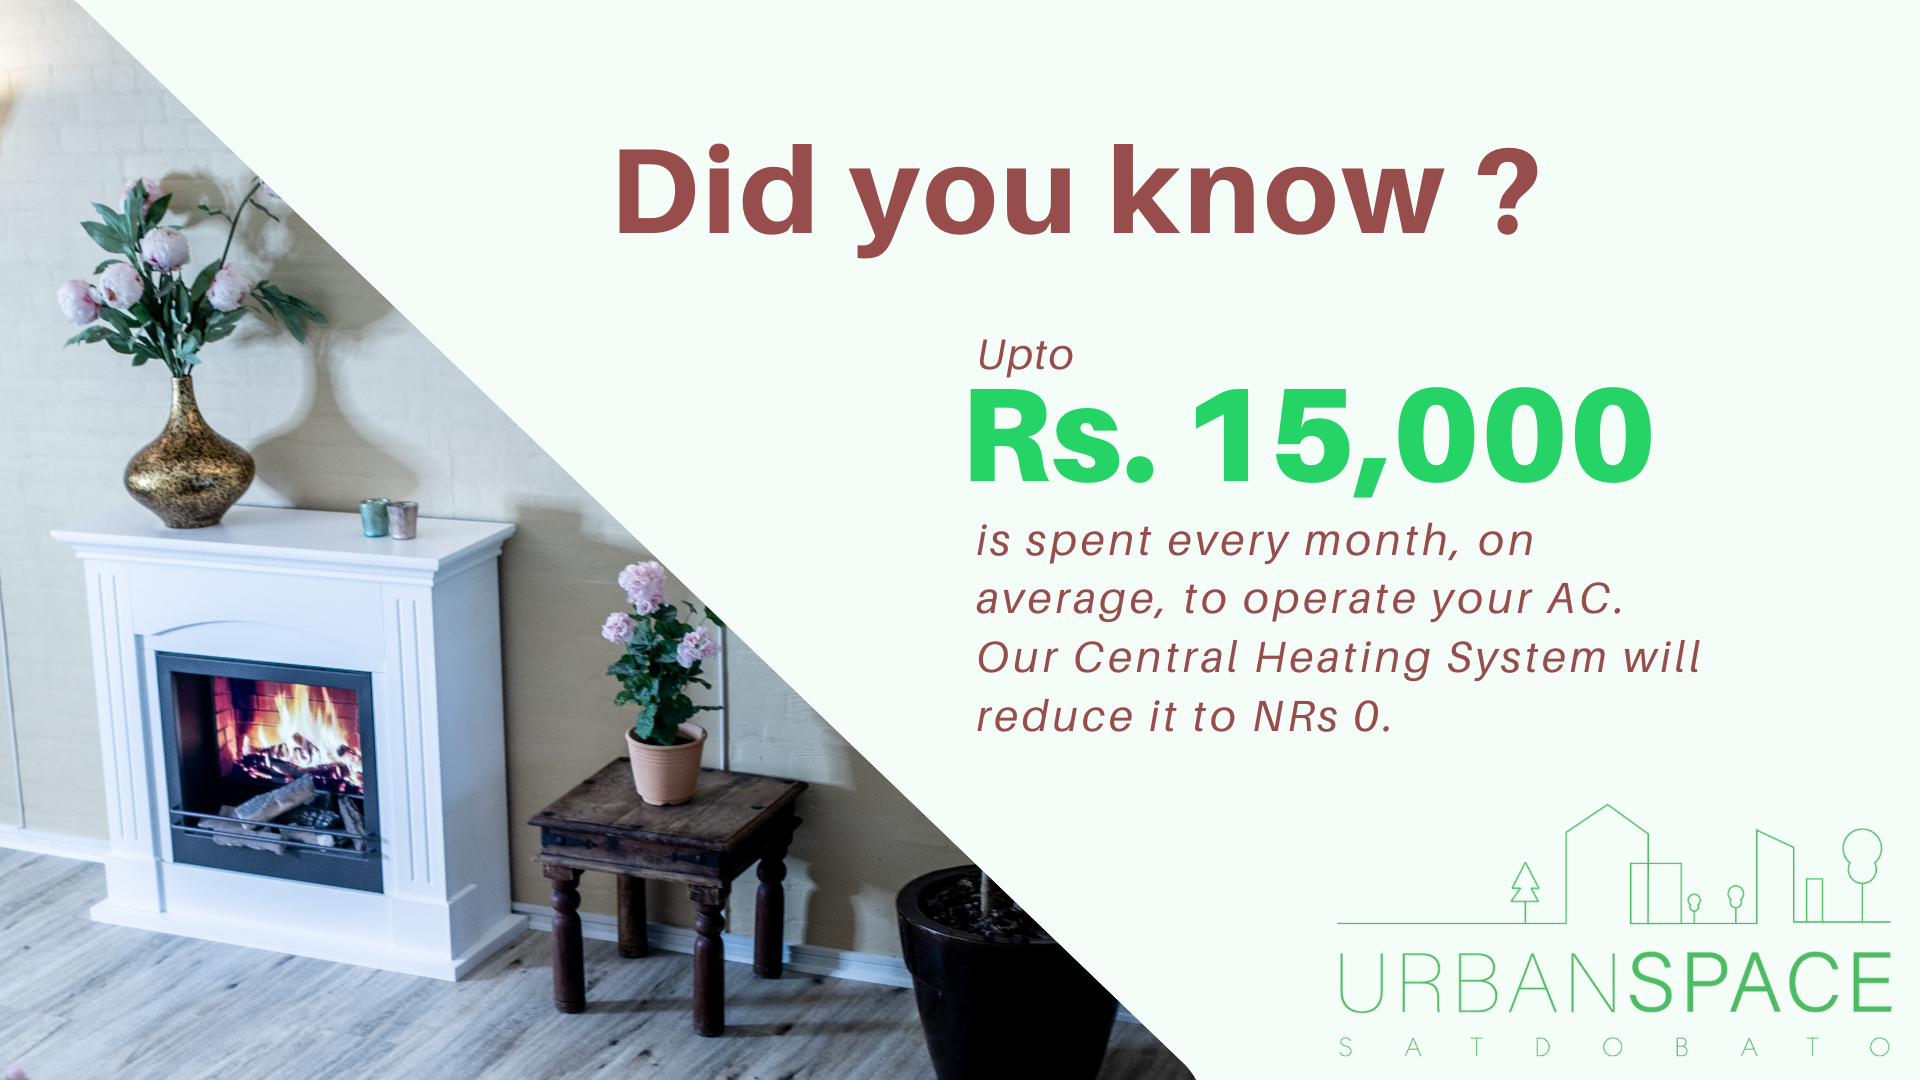 Central Heating | The Urban Space | First Time in Nepal | Urban Space Nepal